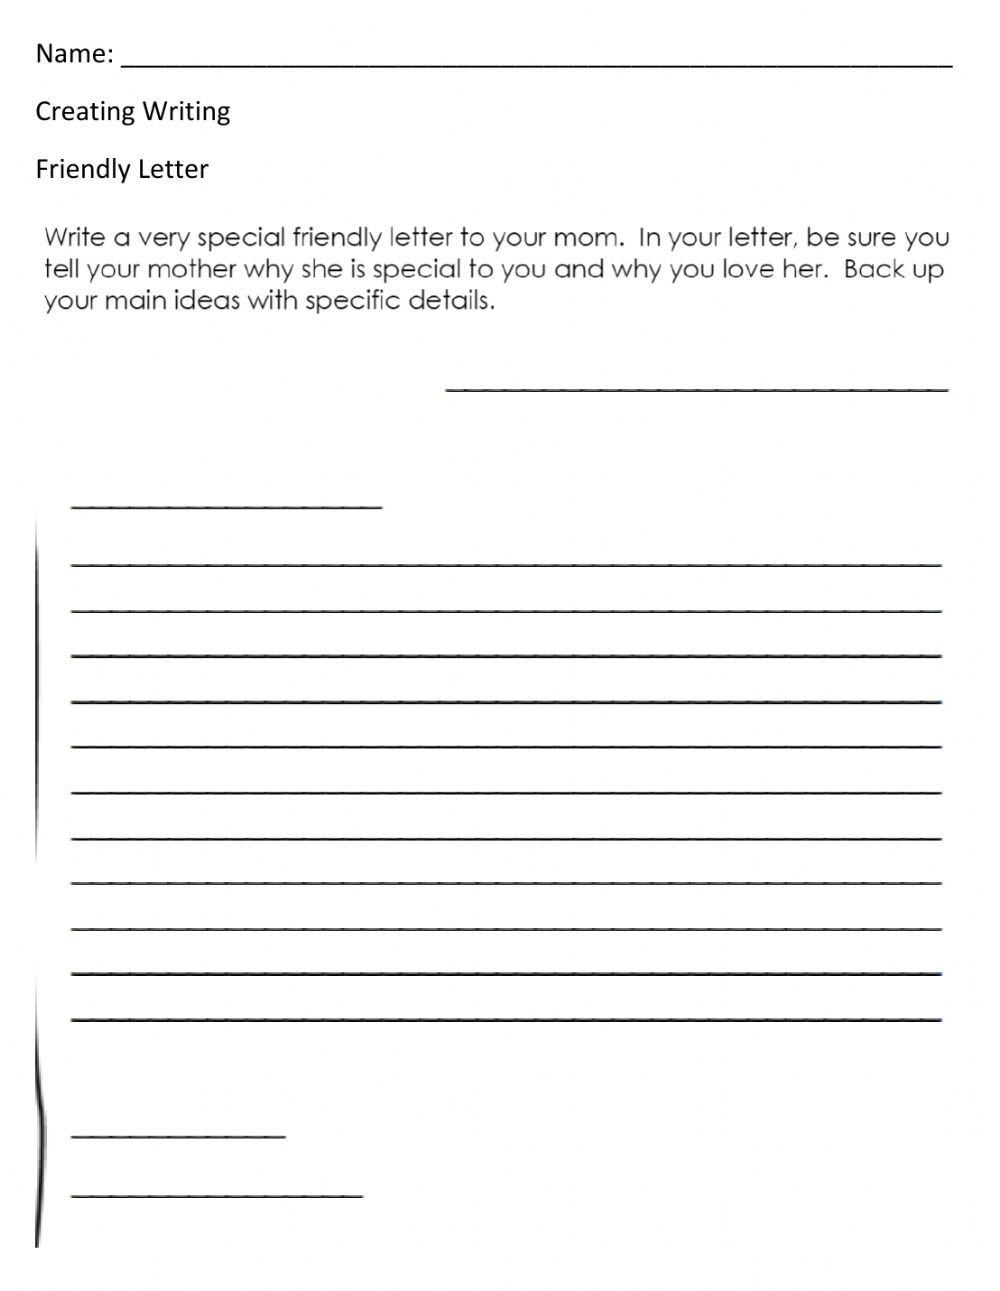 Friendly Letter Writing Worksheets Friendly Letter Interactive Worksheet